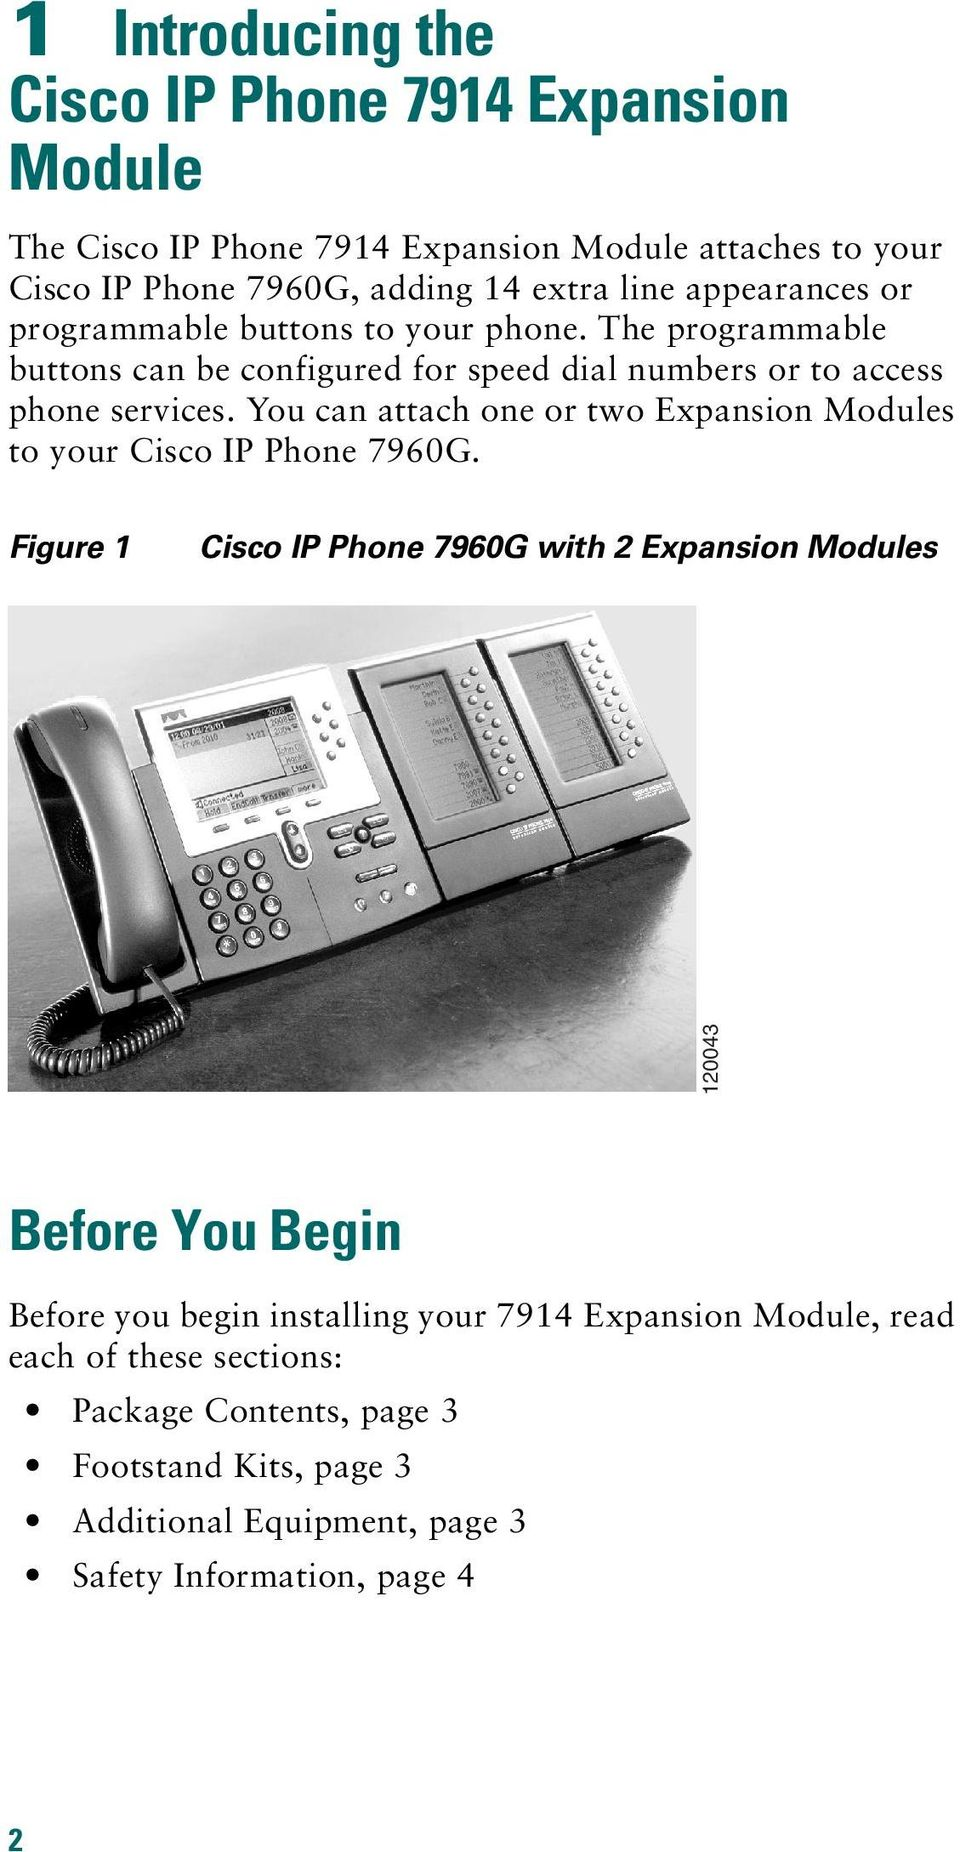 You can attach one or two Expansion Modules to your Cisco IP Phone 7960G.